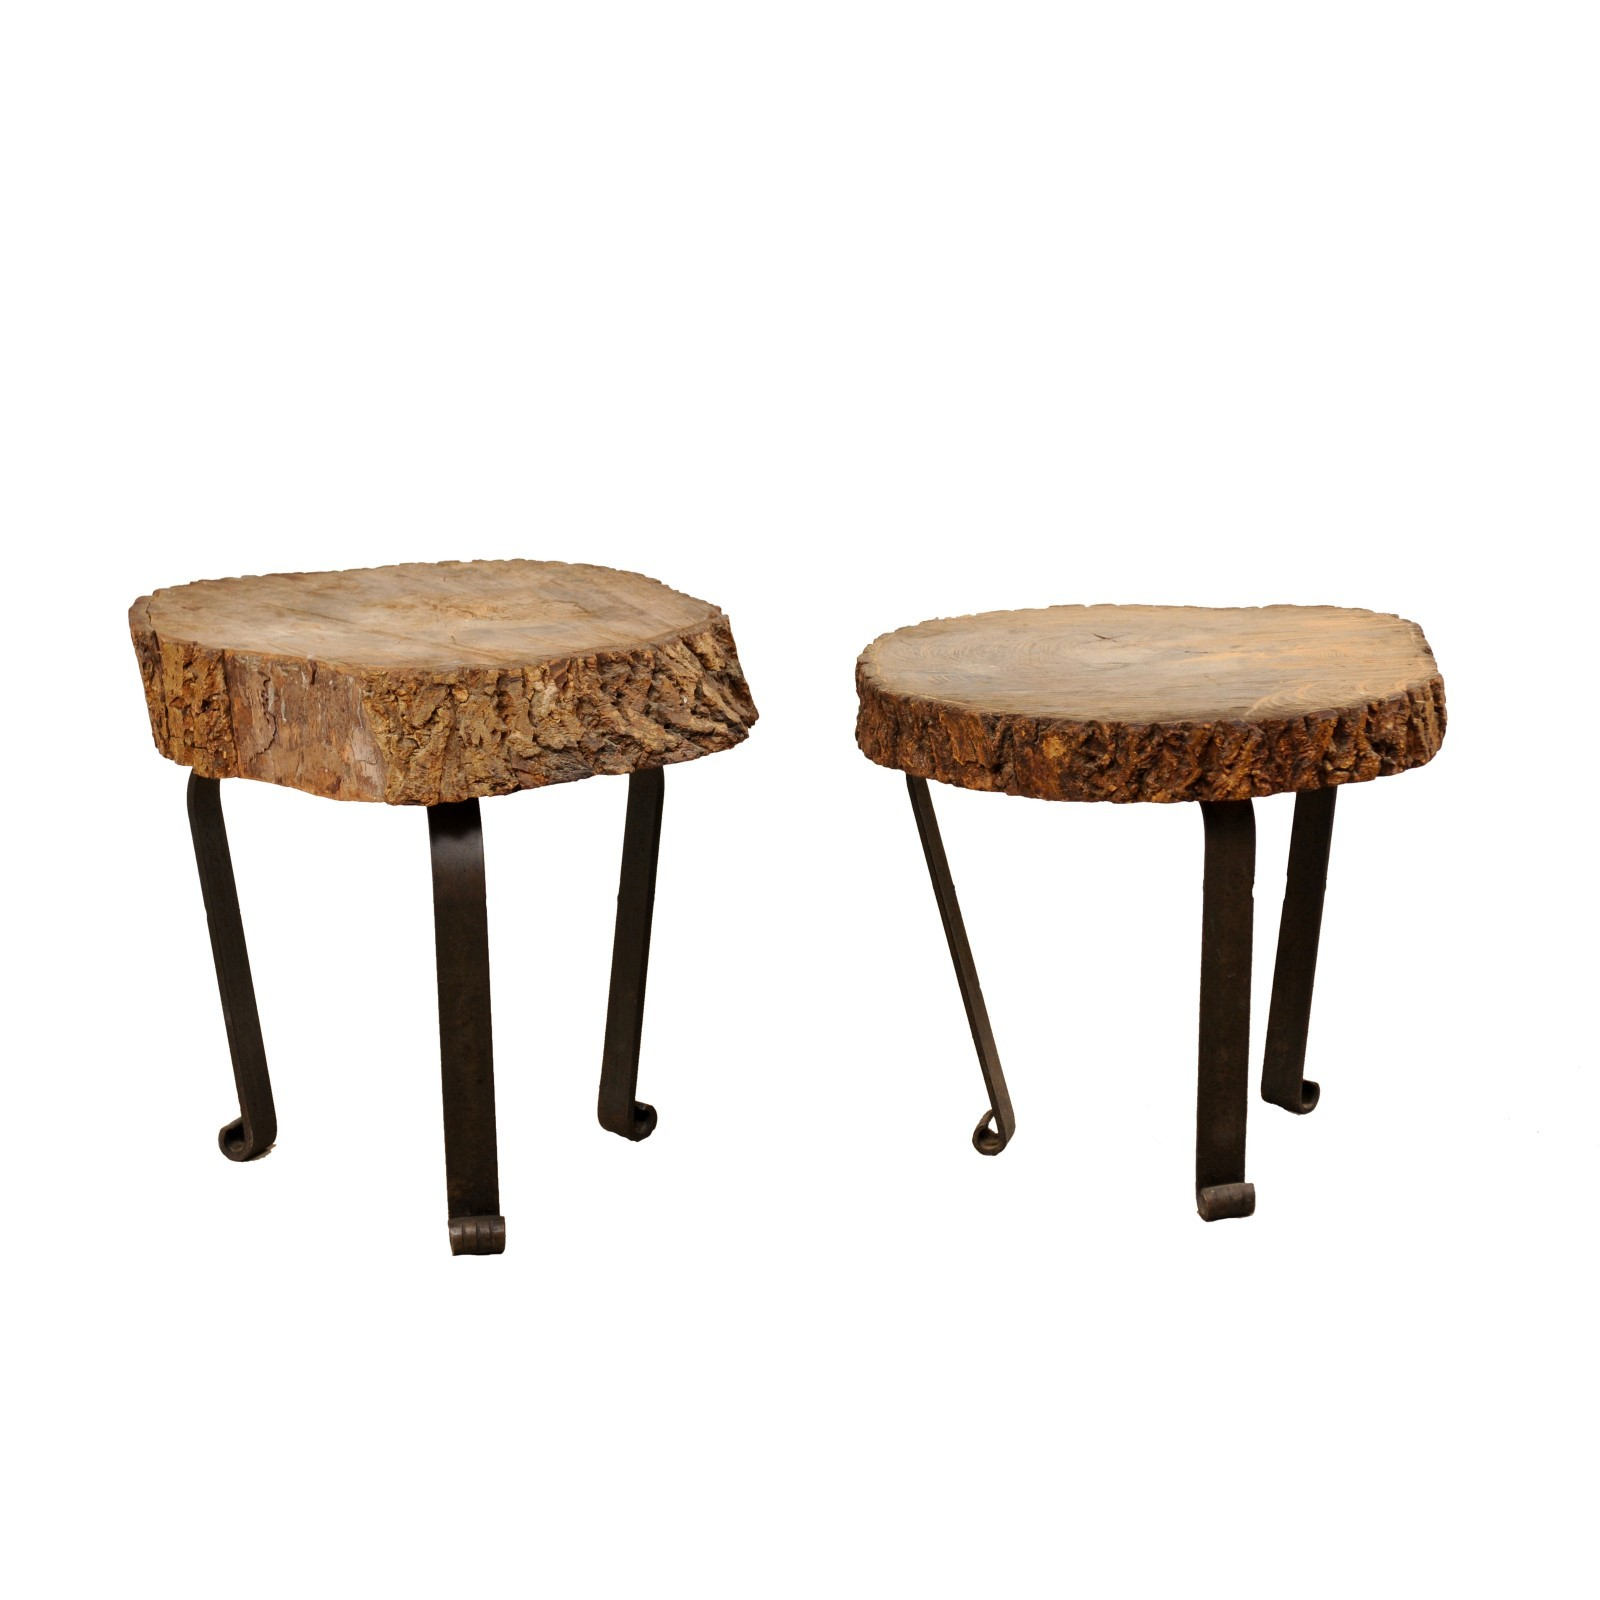 Pair Petite Sliced Log Tables